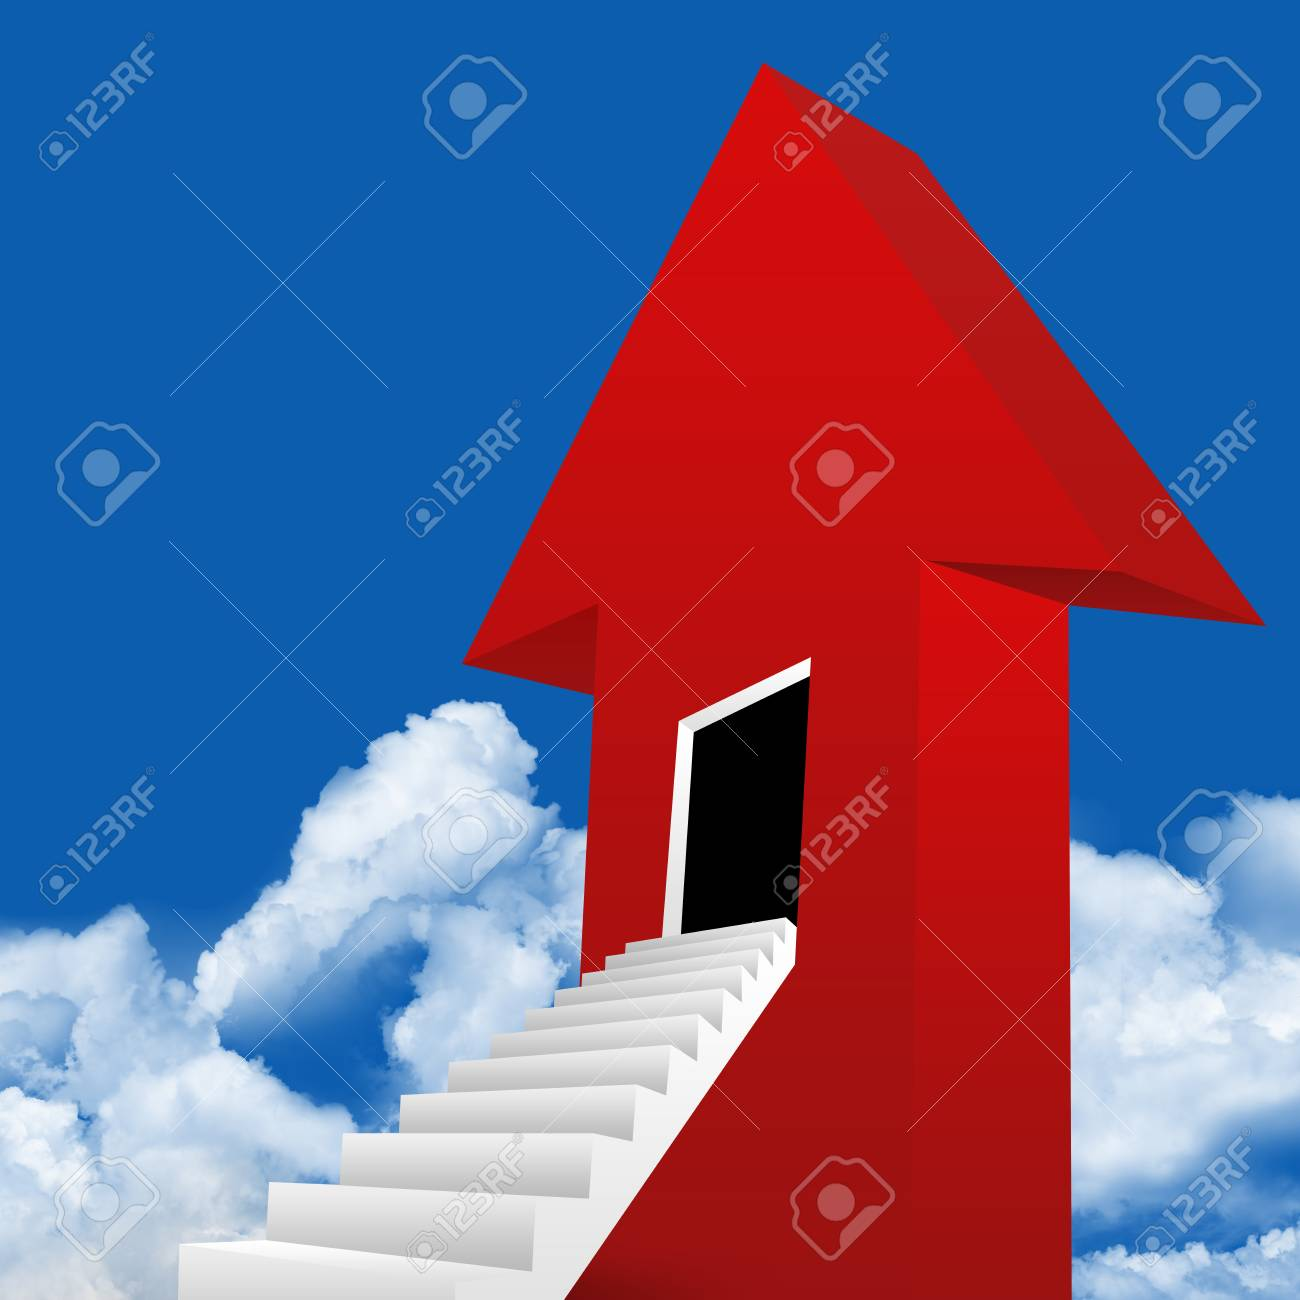 3D Image of Stairway to Success With Blue Sky Background, Business Concept Stock Photo - 14687241